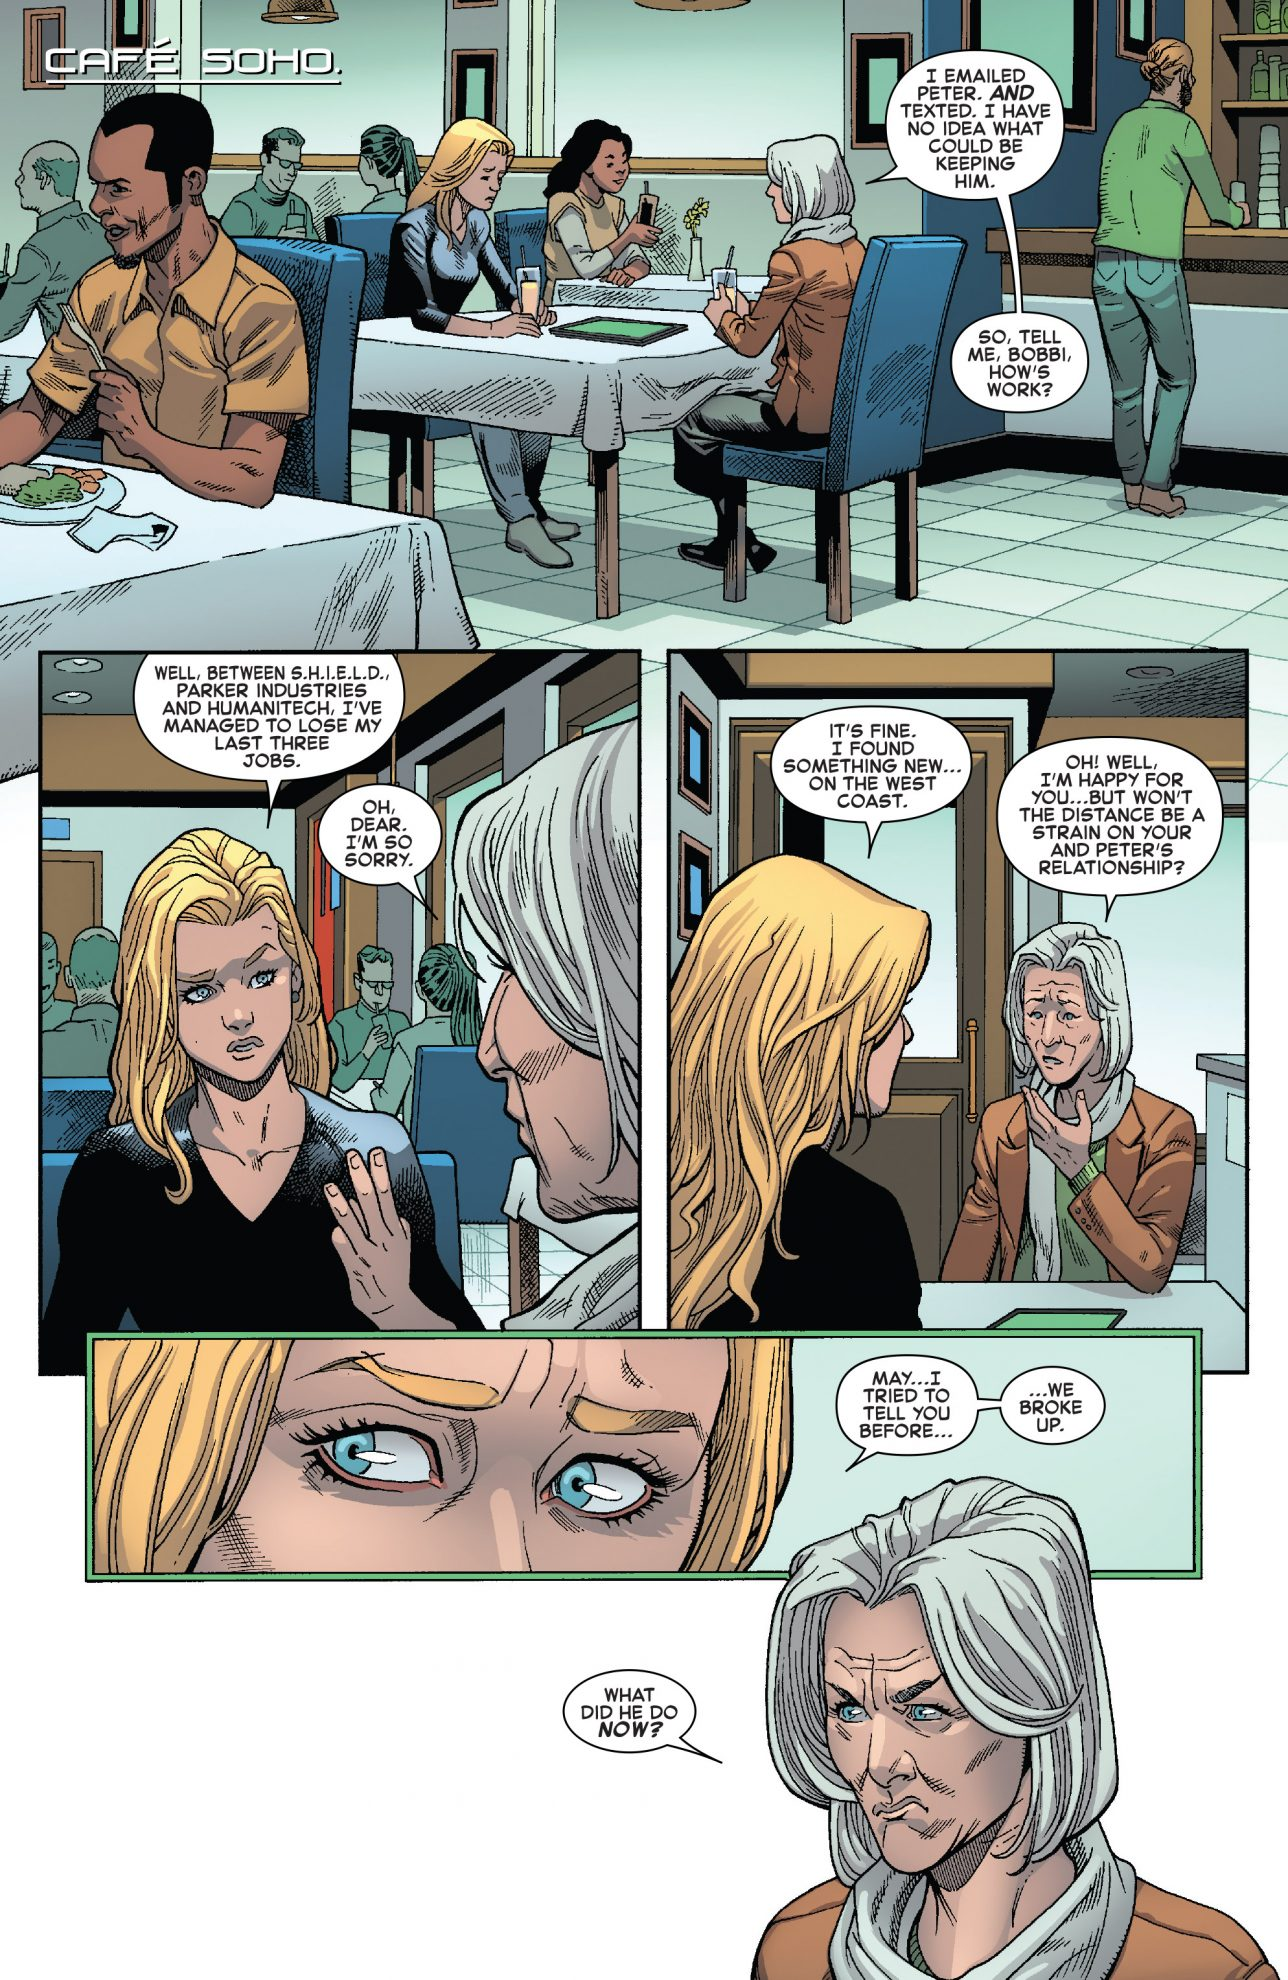 Why Spider-Man And Mockingbird Broke Up | Comicnewbies